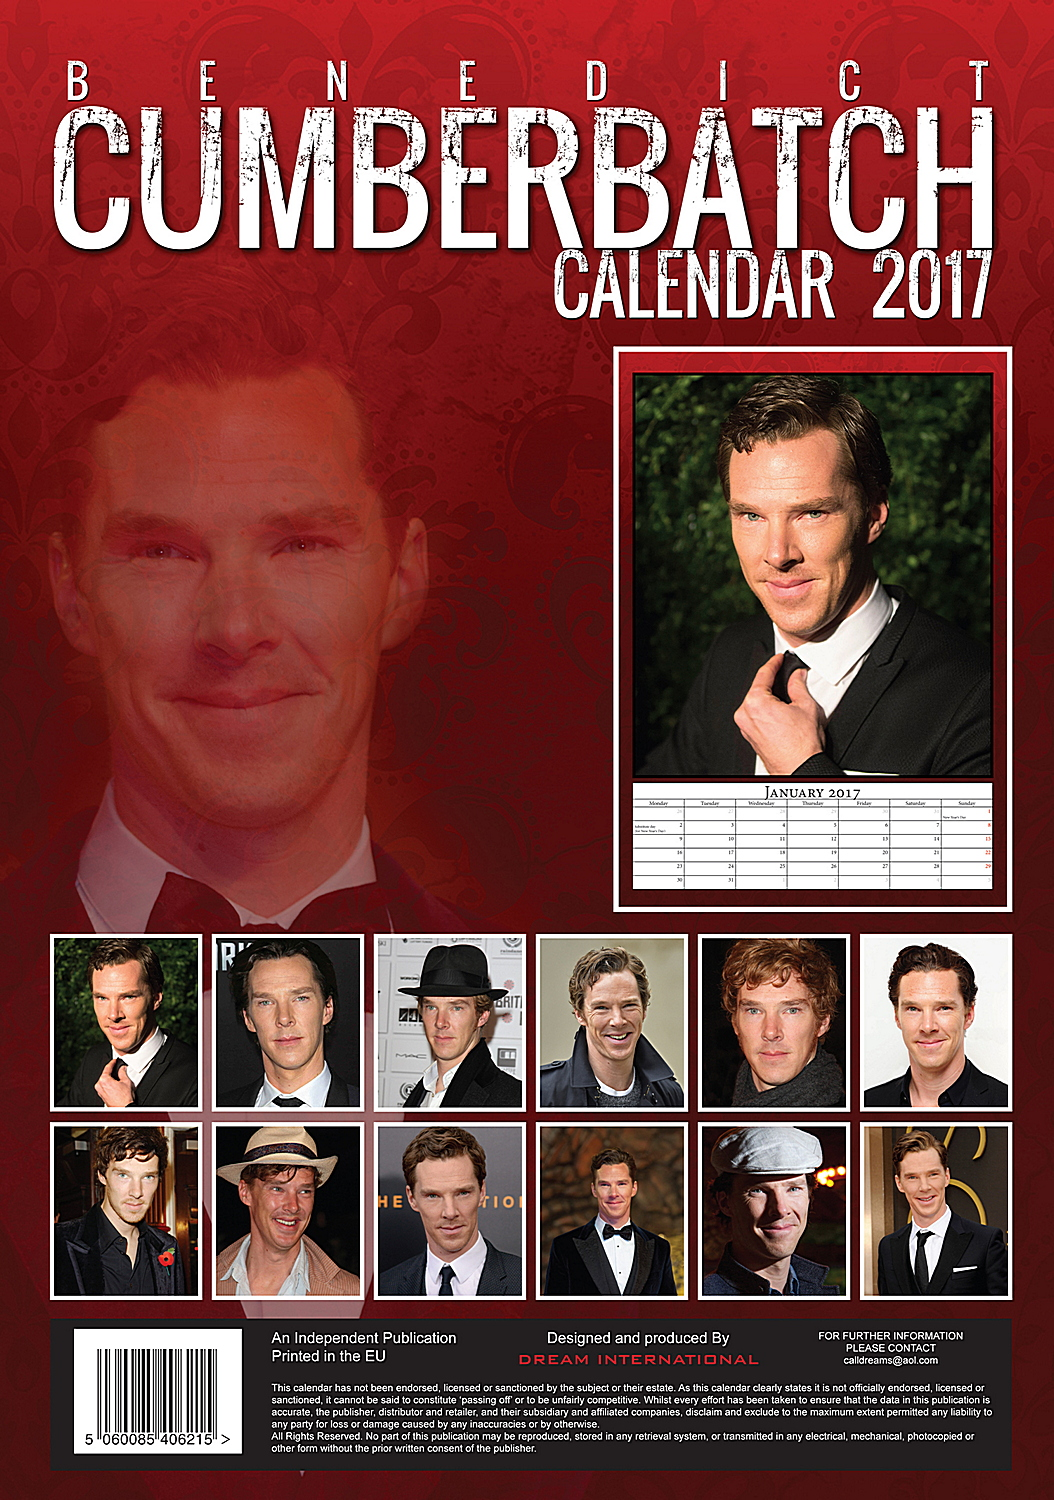 Benedict Cumberbatch Celebrity Wall Calendar 2017 back 5060085406215